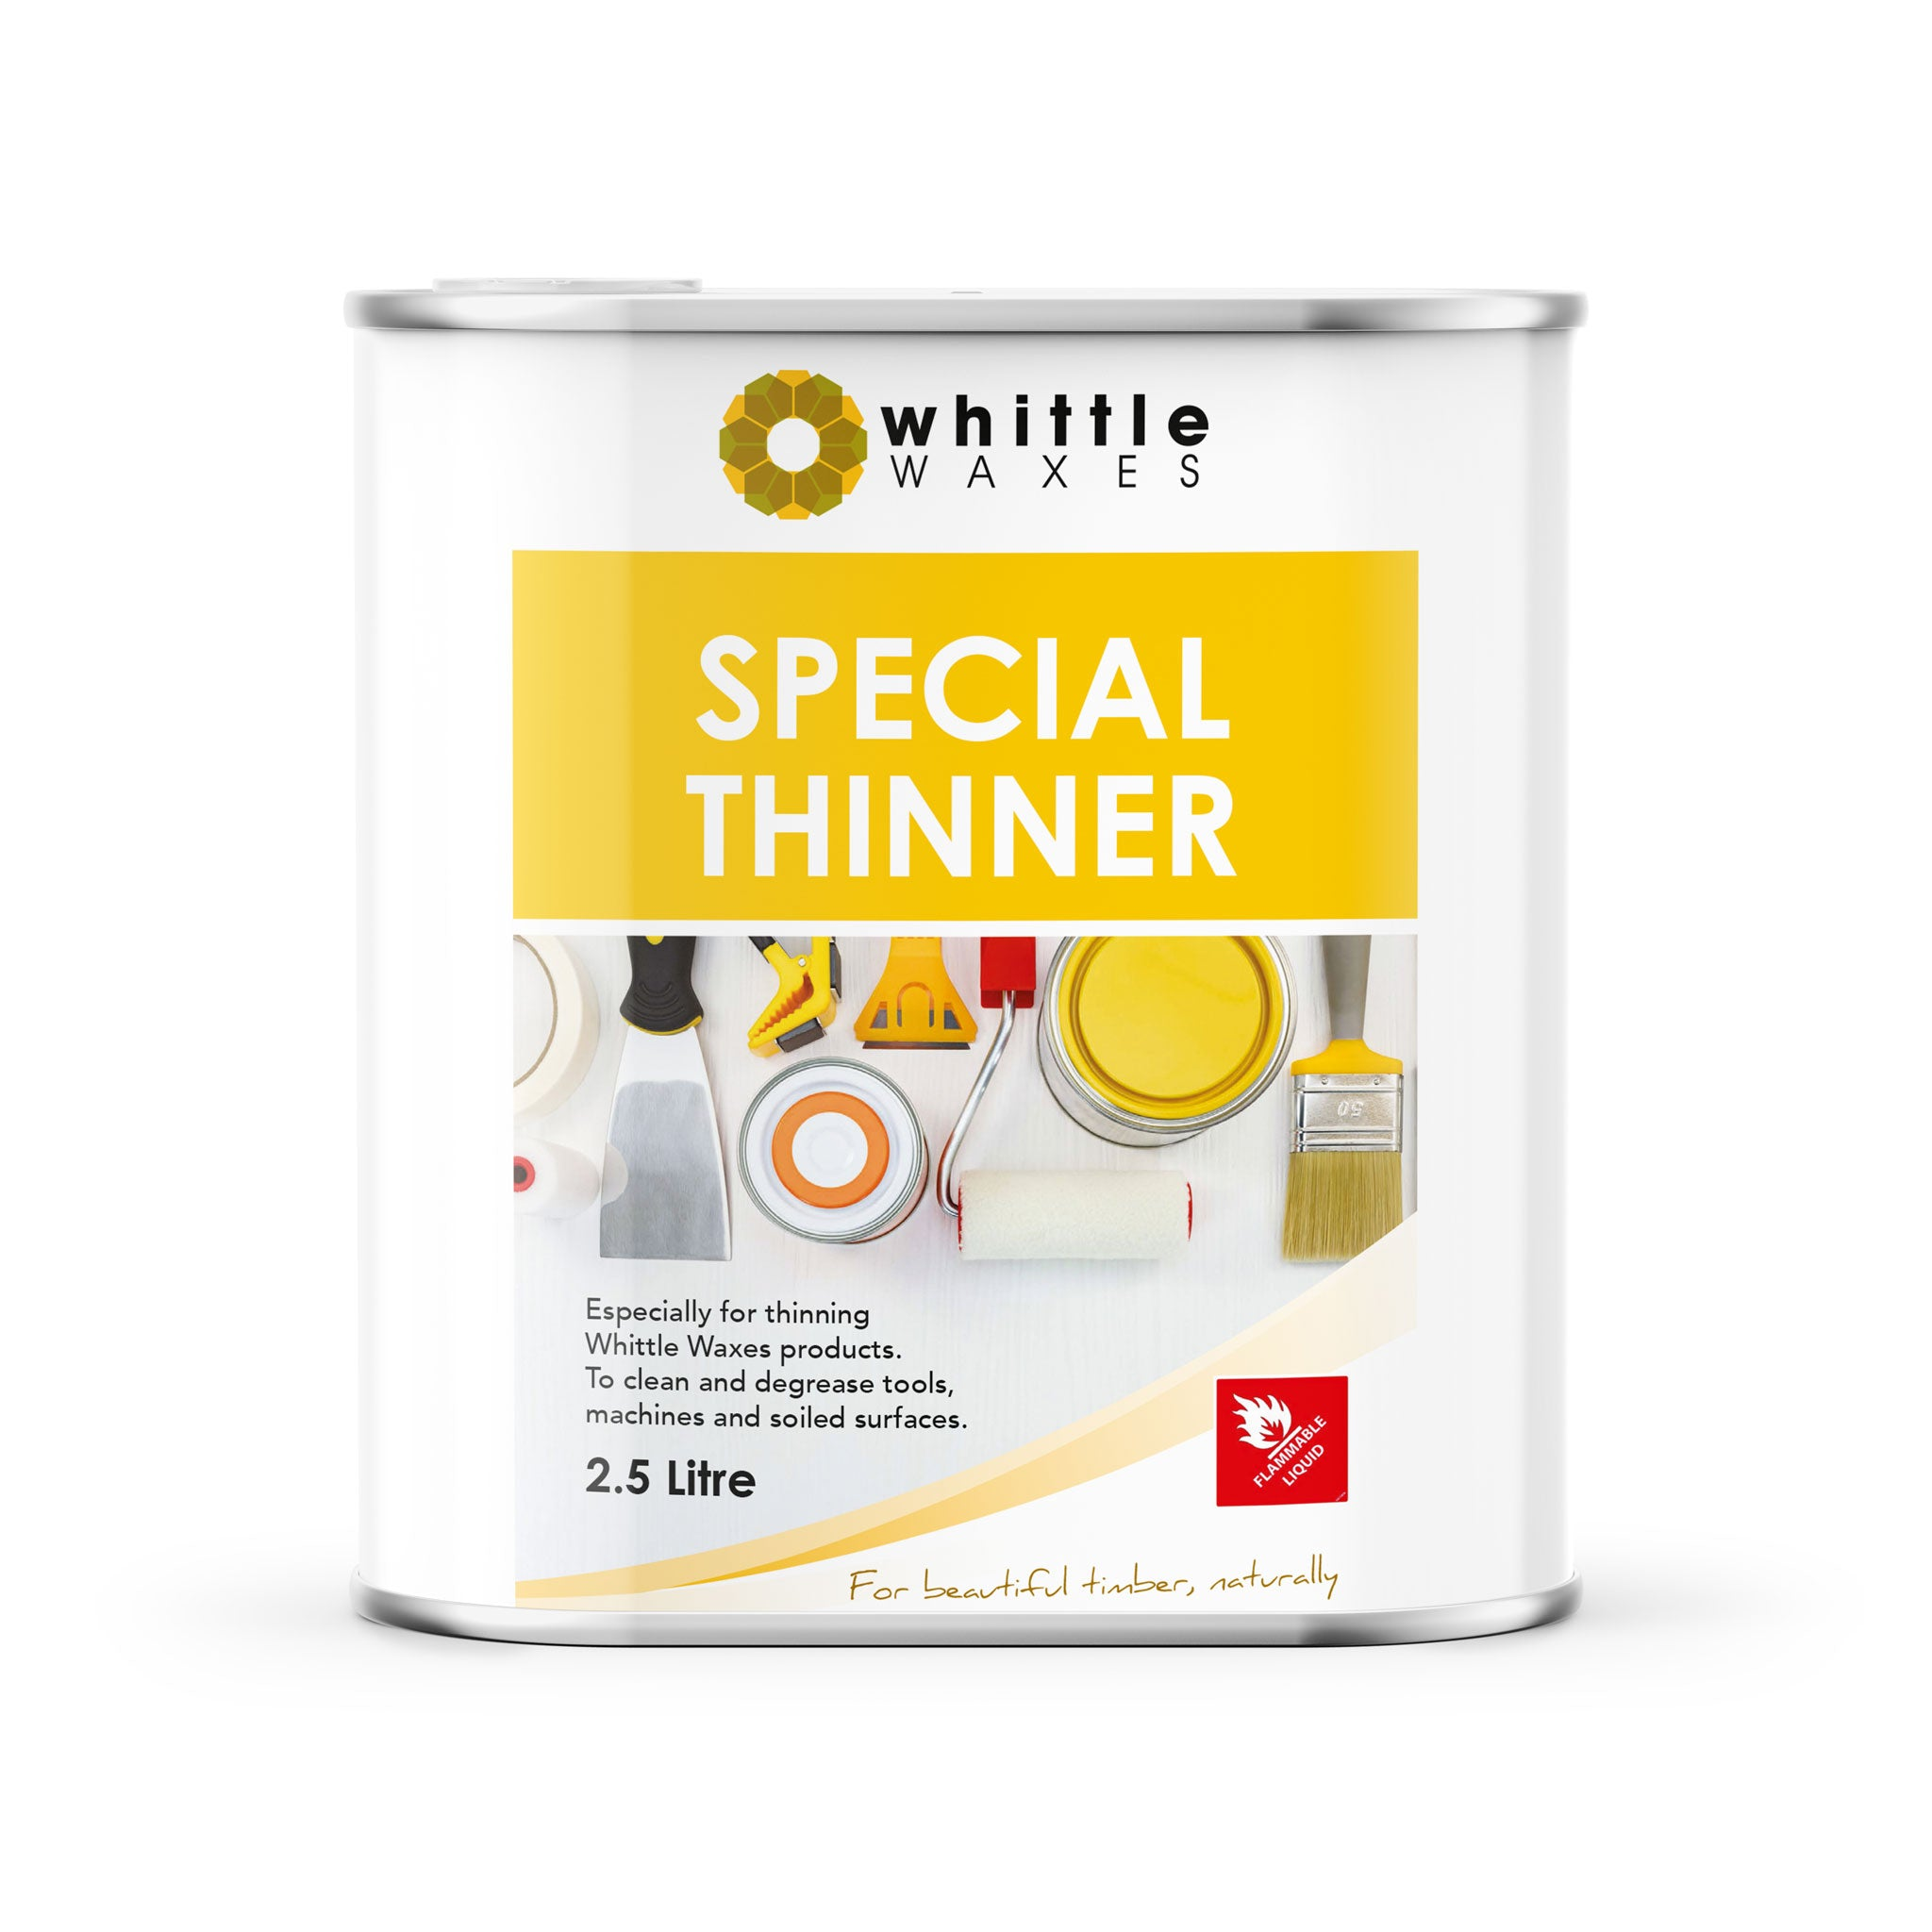 Whittle Waxes Special Thinners - for cleaning and degreasing - 2.5 litre